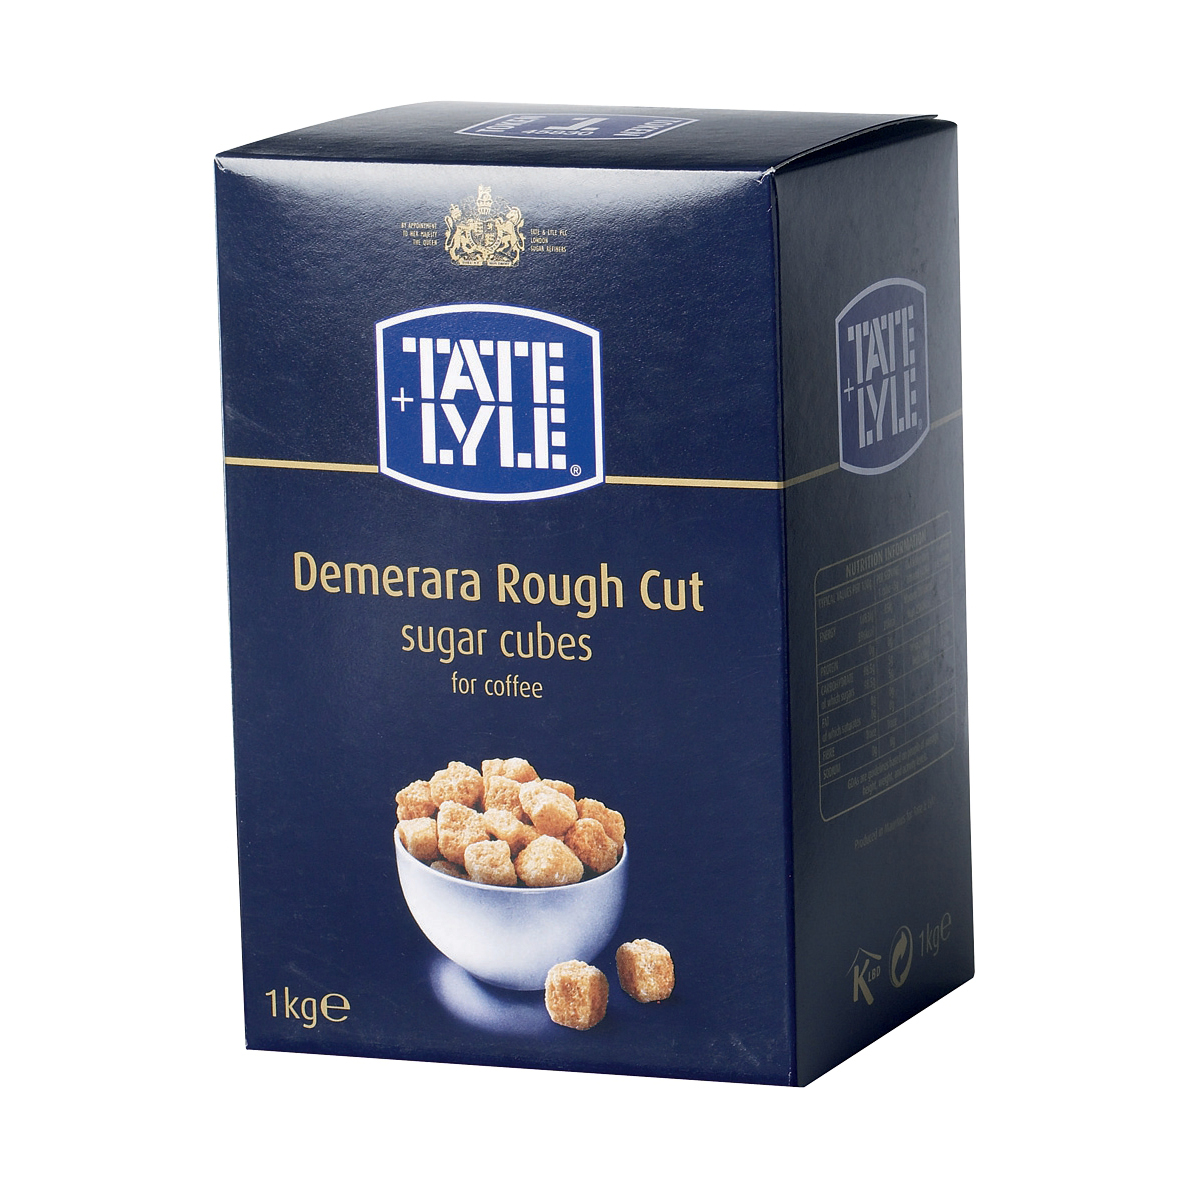 Sugar / Sweetener Tate & Lyle Demerara Sugar Cubes Rough-cut 1Kg Ref A03903